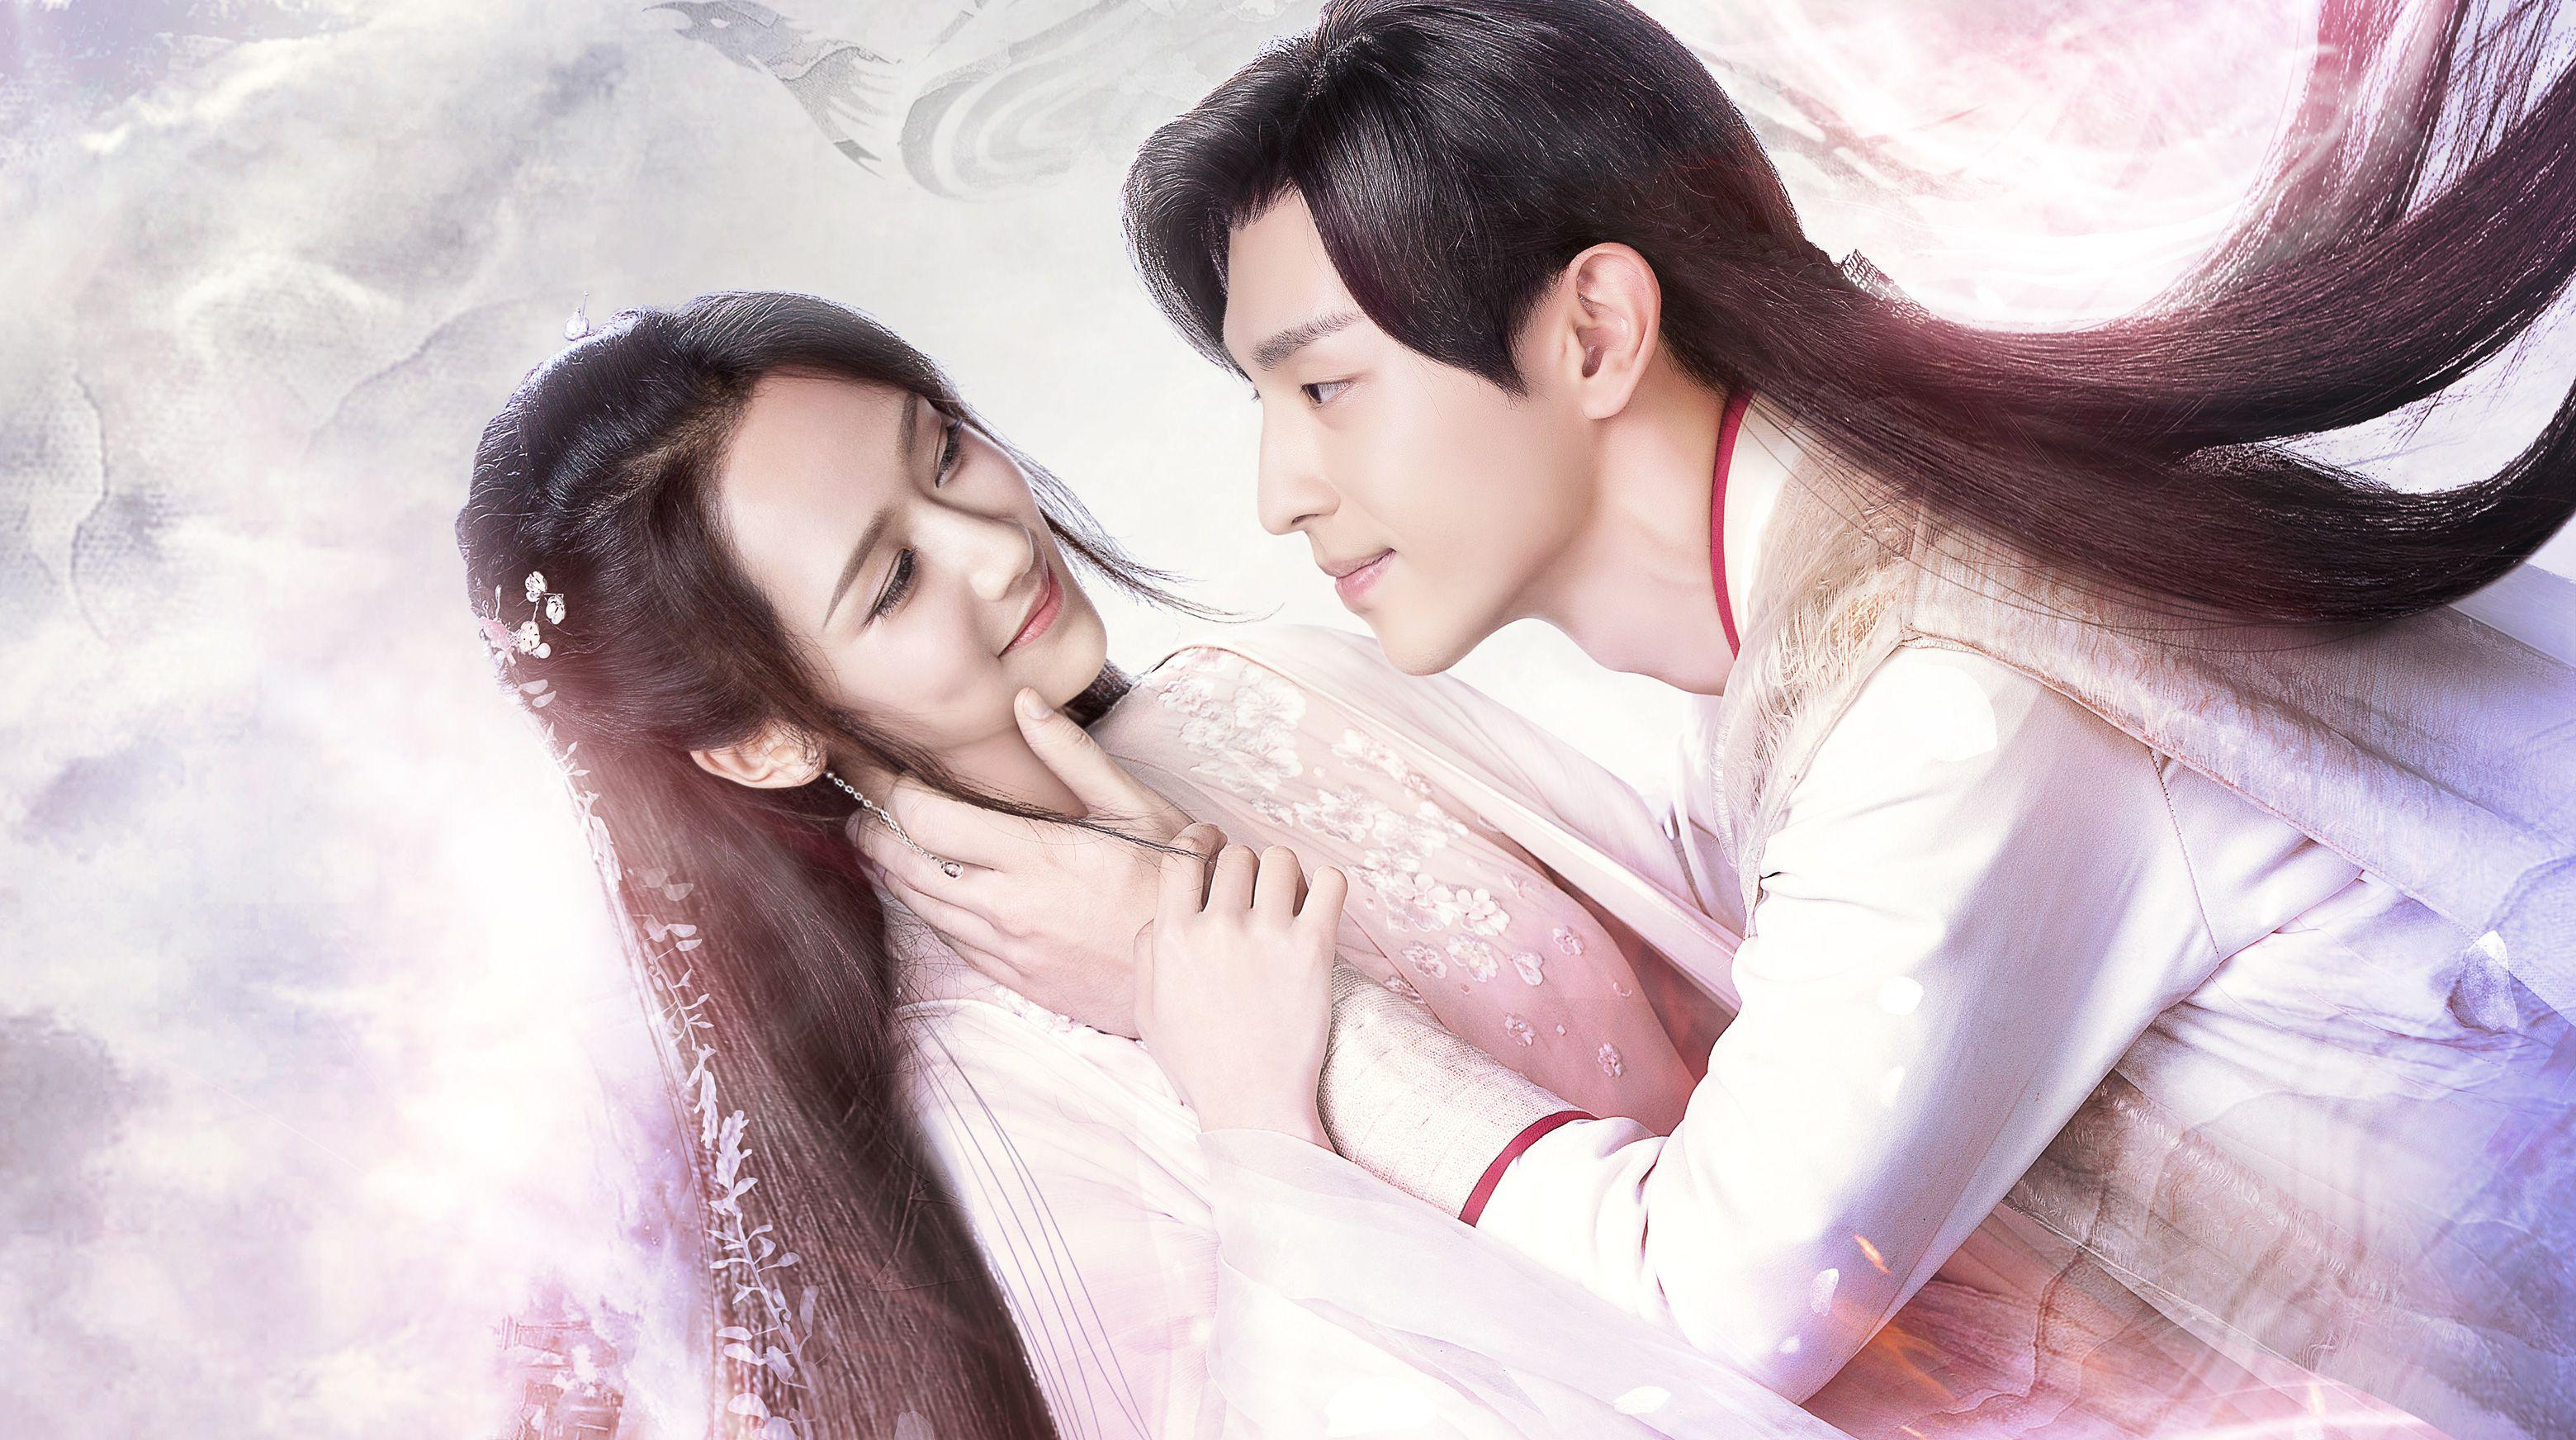 40 Questions Korean Drama - Ashes of Love